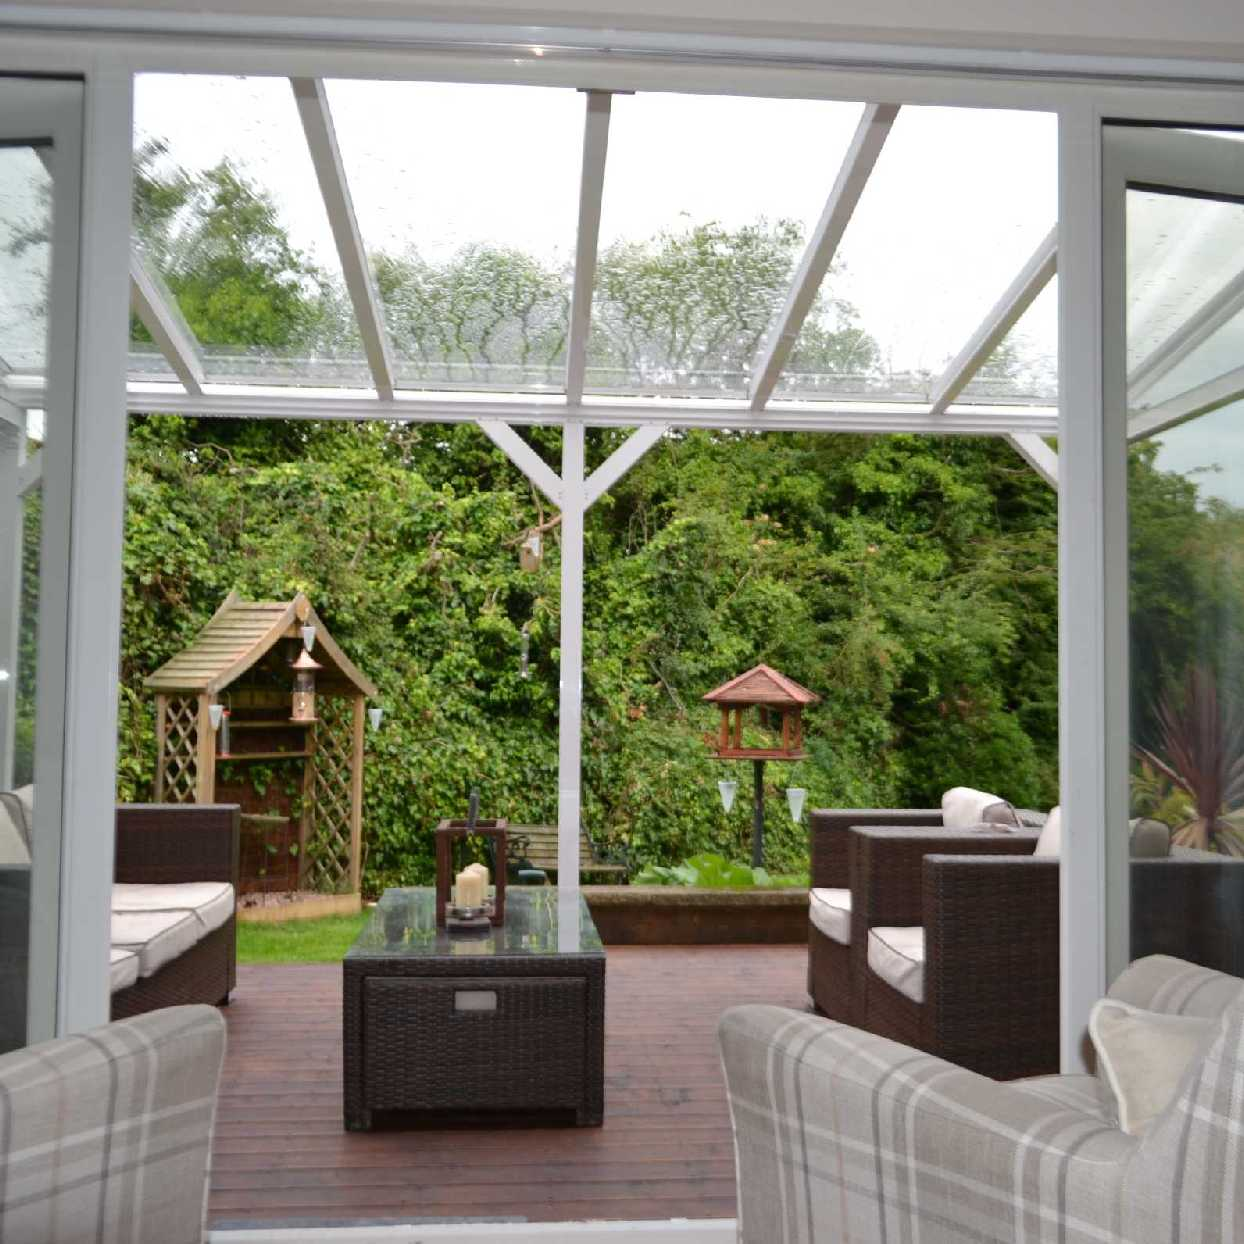 Great selection of Omega Smart Lean-To Canopy UNGLAZED for 6mm Glazing - 5.2m (W) x 4.0m (P), (3) Supporting Posts